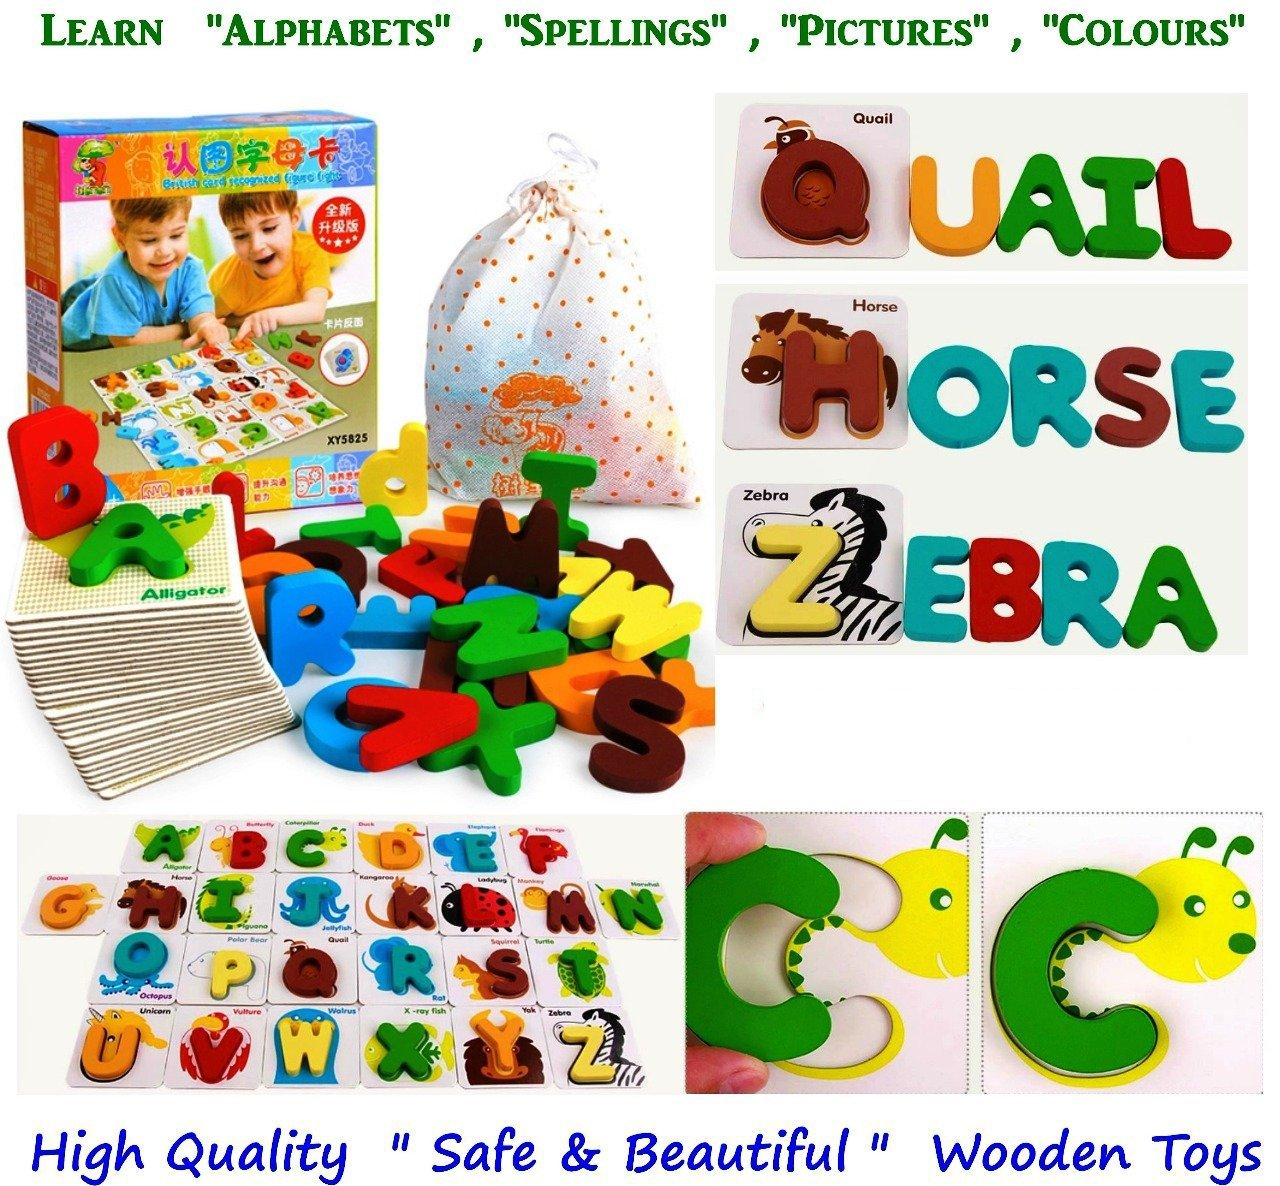 Happy GiftMart Kids and Infants Wooden 4 in 1 Toy Learn ABC Alphabet Animals Colours, Spelling Toddlers, 22x18x4cm (Multicolour) - Pack of 26 product image